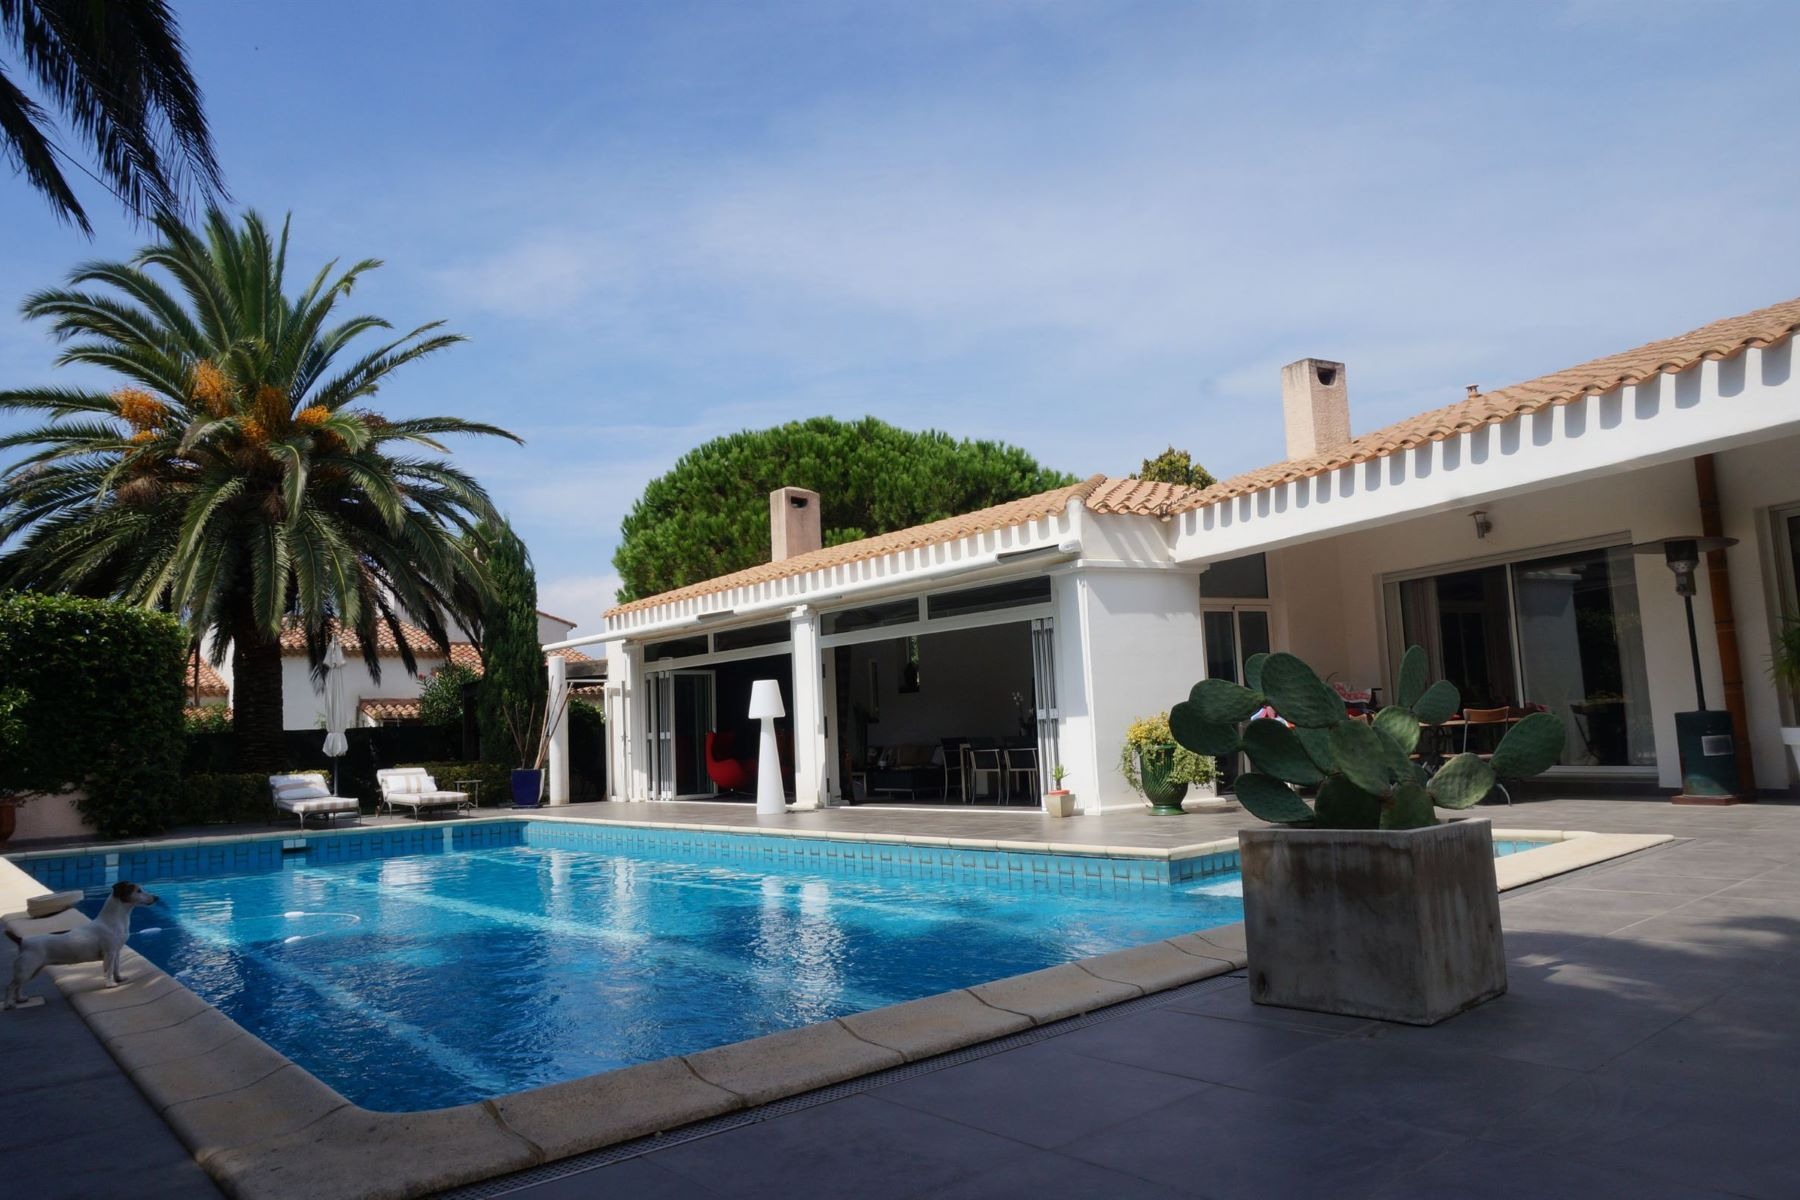 Single Family Home for Sale at Perpignan : indoor and outdoor pool, 400sqm on 1500sqm plot Perpignan, Languedoc-Roussillon, 66000 France